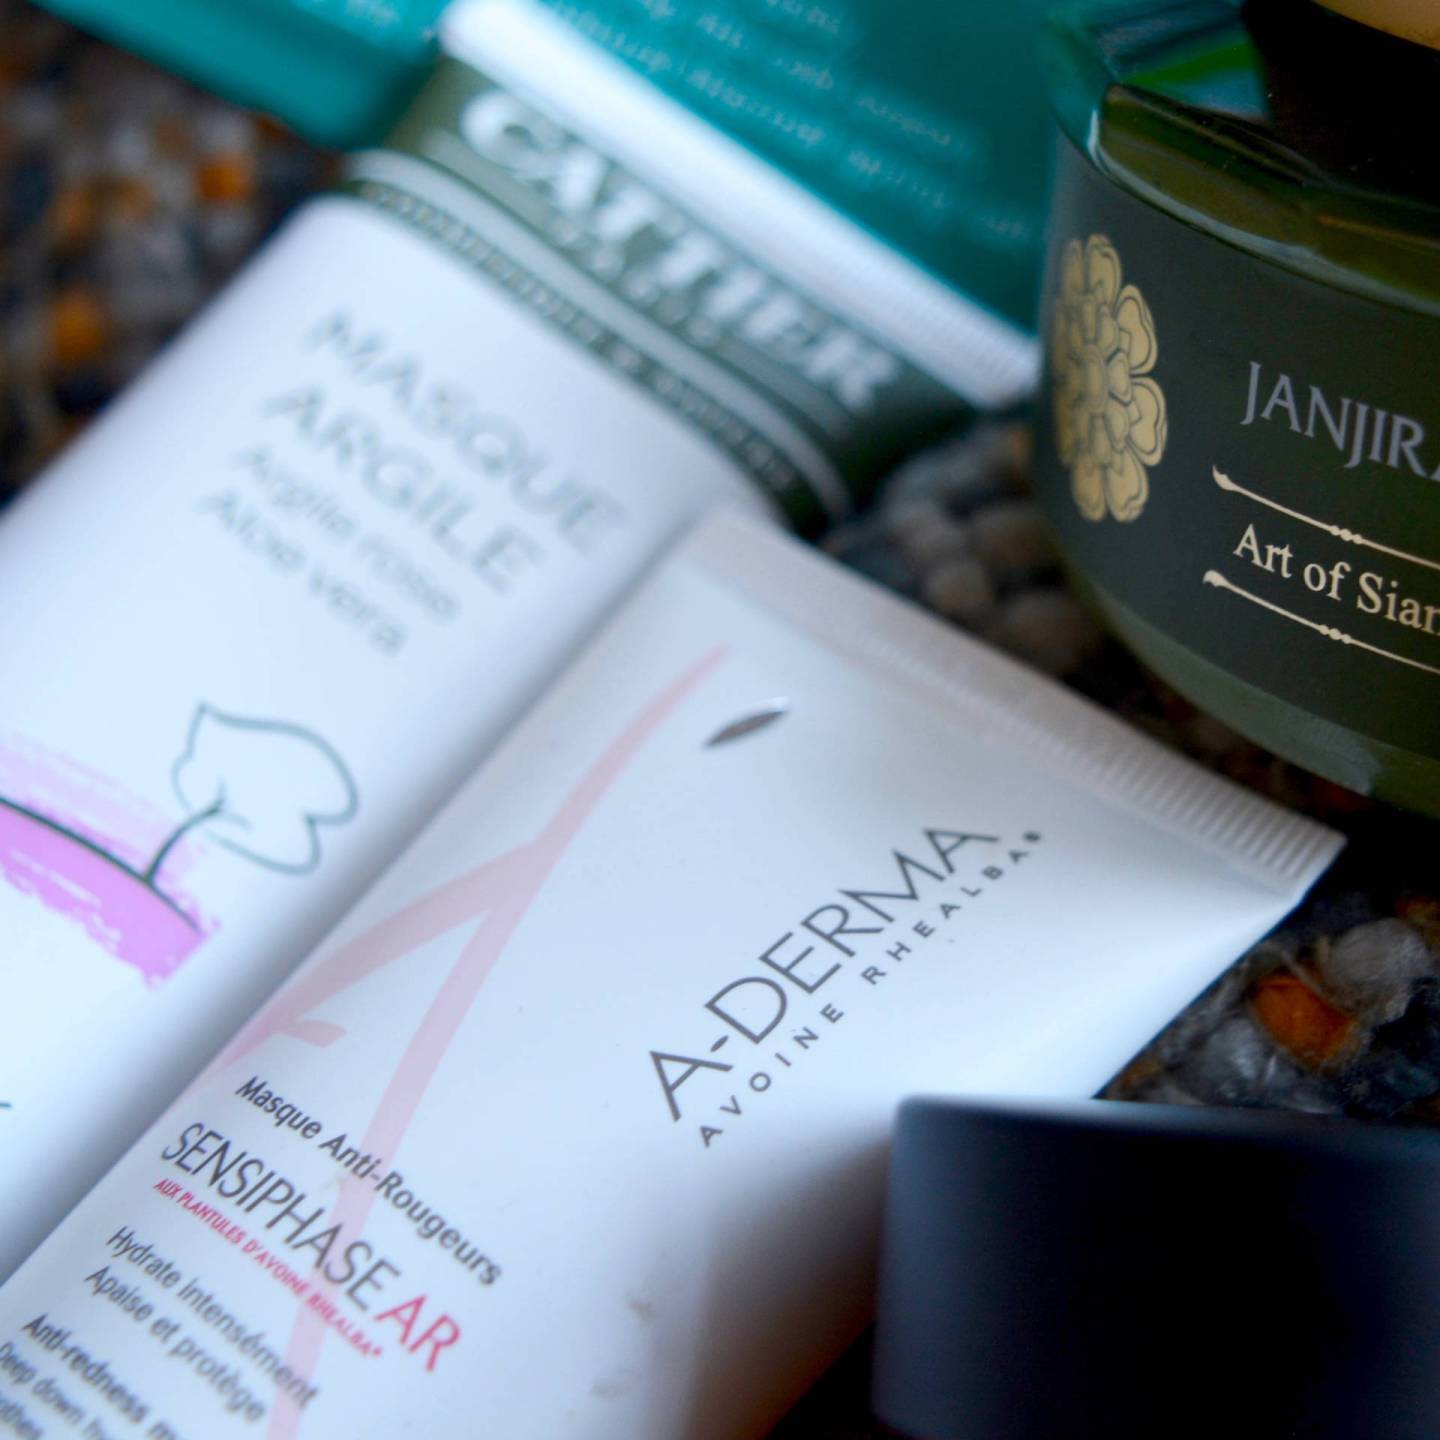 Winter pamper - Another French pharmacy gem, the A-Derma Anti Redness mask is a great moisturising and calming mask for those with sensitive skin